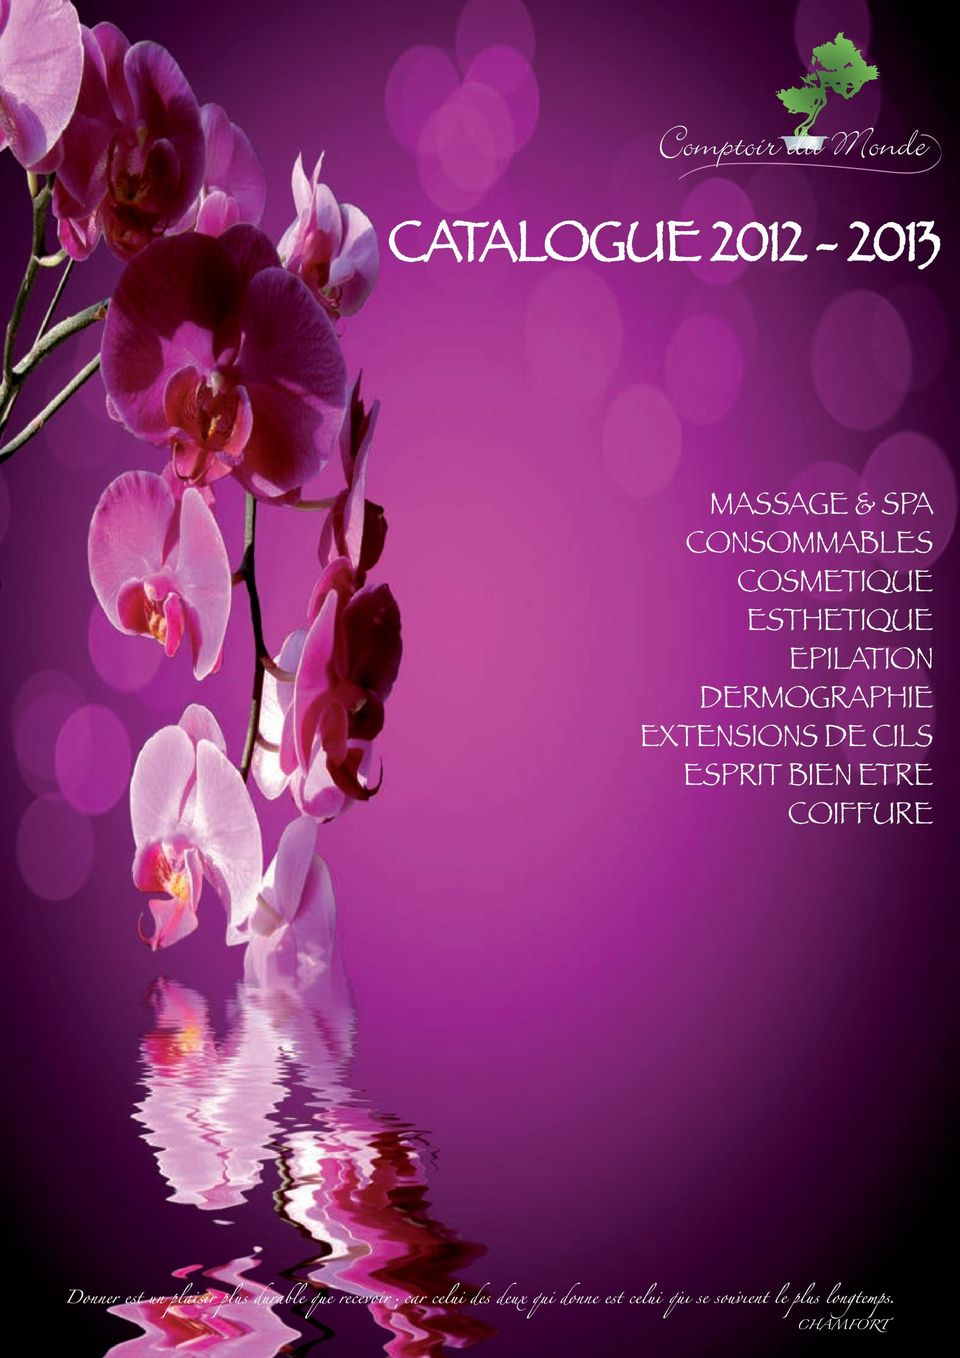 CATALOGUE MASSAGE   SPA CONSOMMABLES COSMETIQUE ESTHETIQUE EPILATION ... 257b85a1bc03